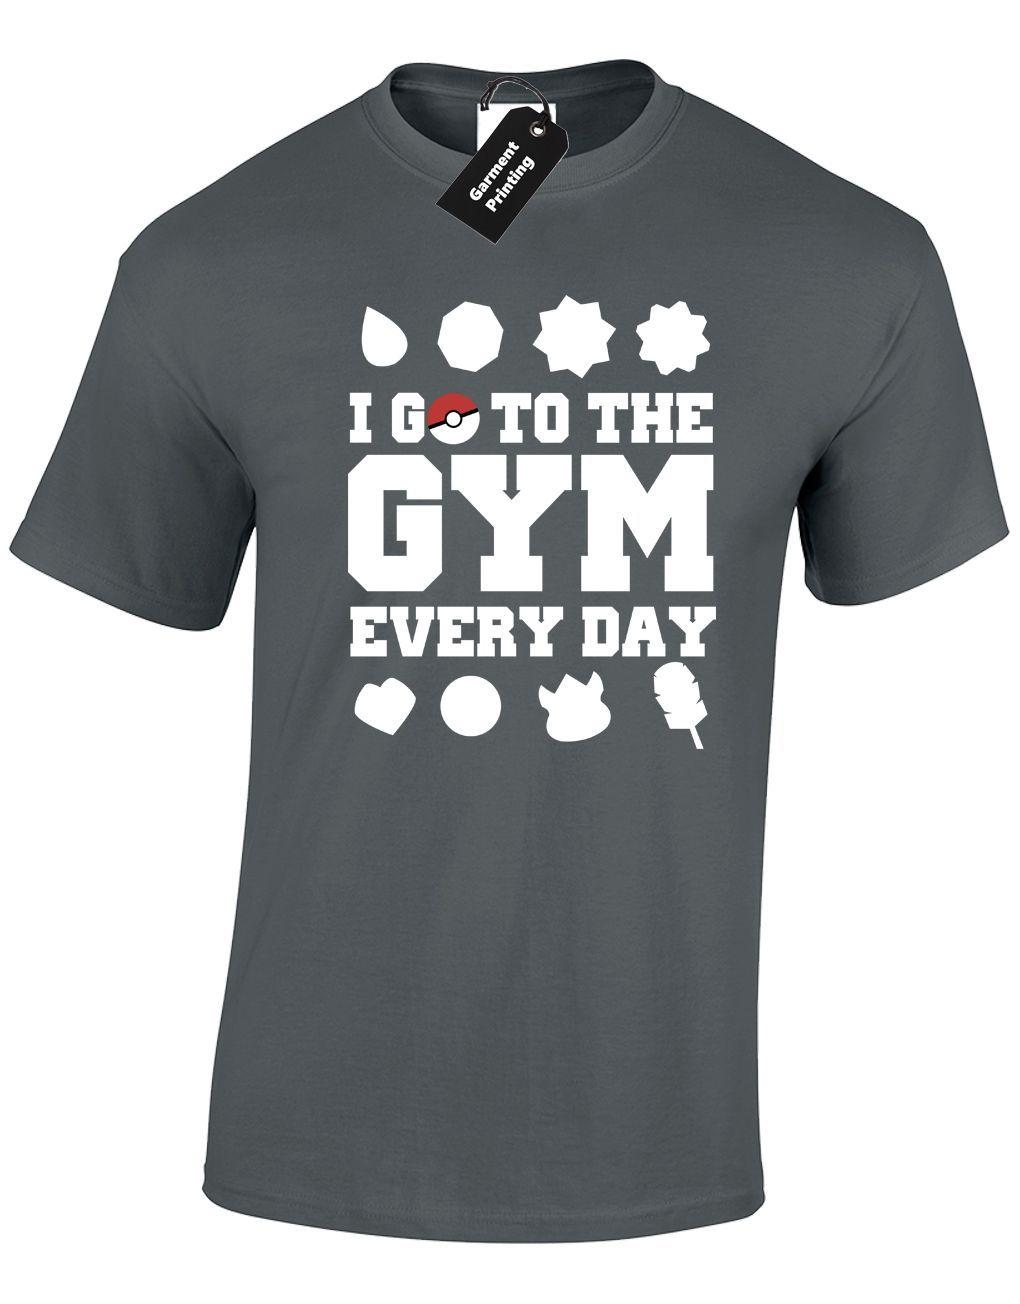 9151ba308 I GO TO THE GYM EVERY DAY MENS T SHIRT ANIME FITNESS CHARIZARD ASH POKEBALL  NEW Shirt Site Printing Of T Shirt From Cls6688524, $13.91| DHgate.Com